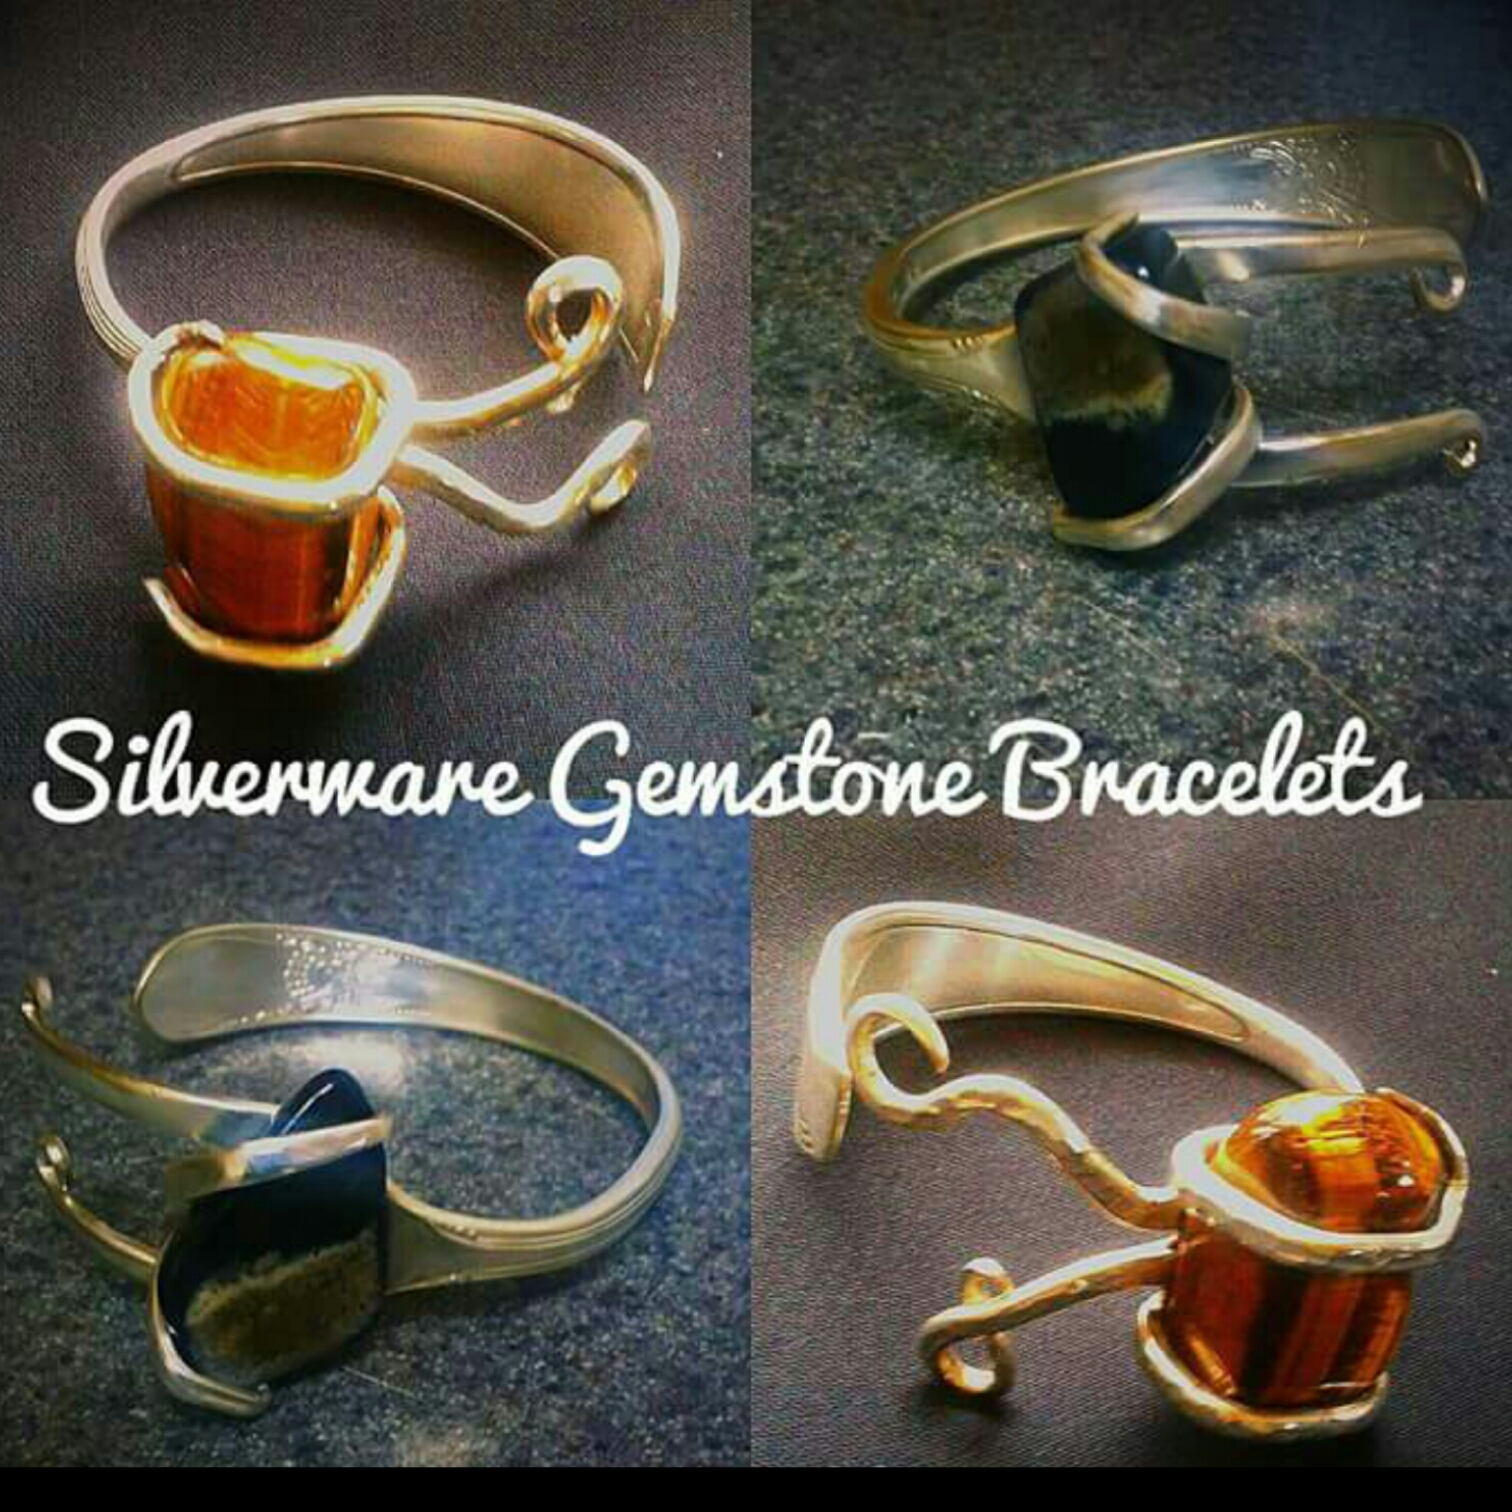 Antique-Silverware-Gemstone-Bracelets